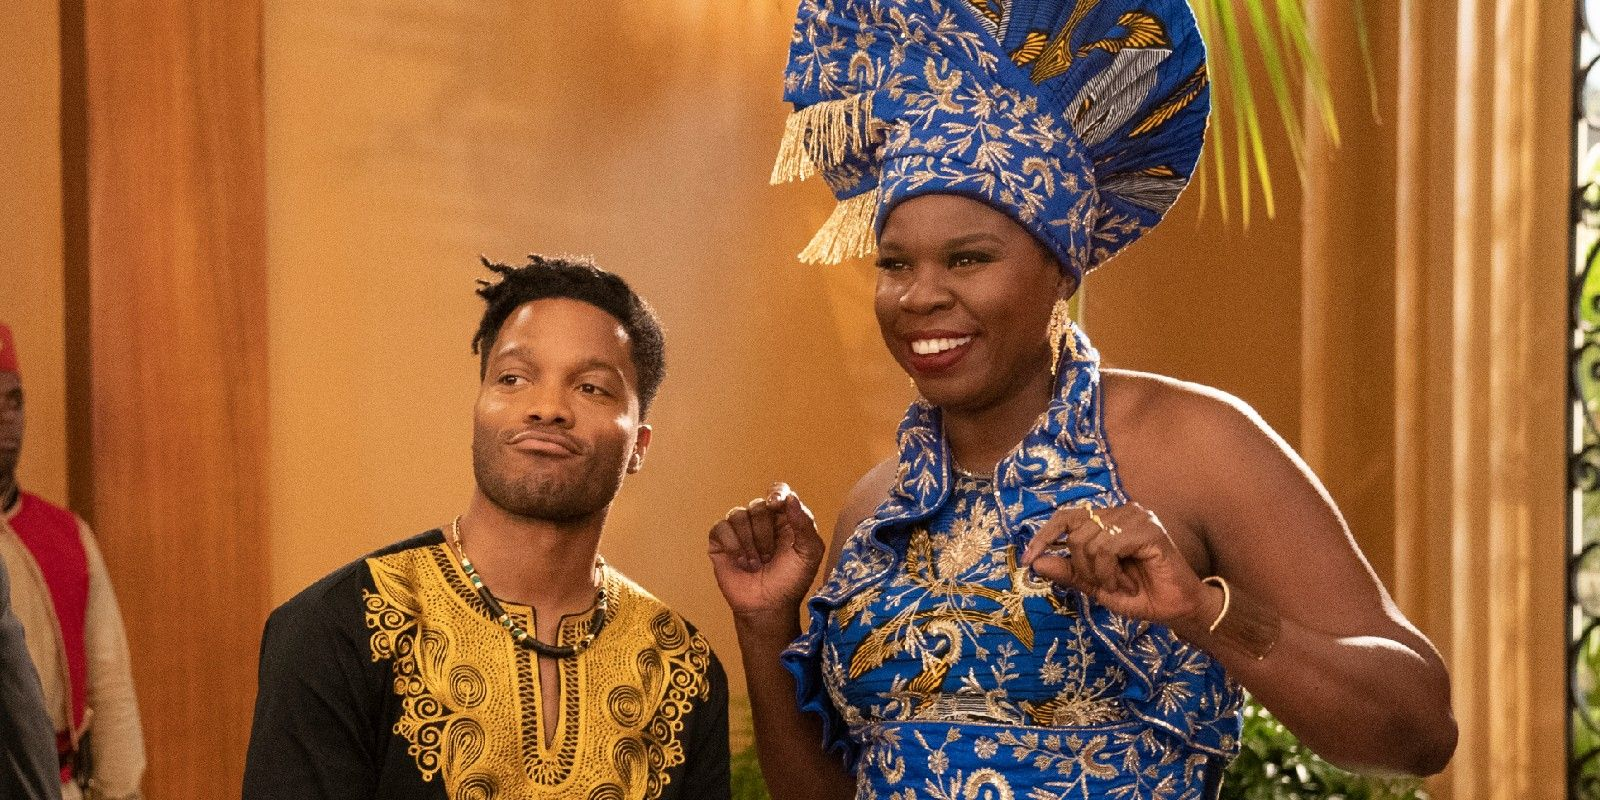 Coming to America 2 Images Introduce Tracy Morgan, Leslie Jones' Characters